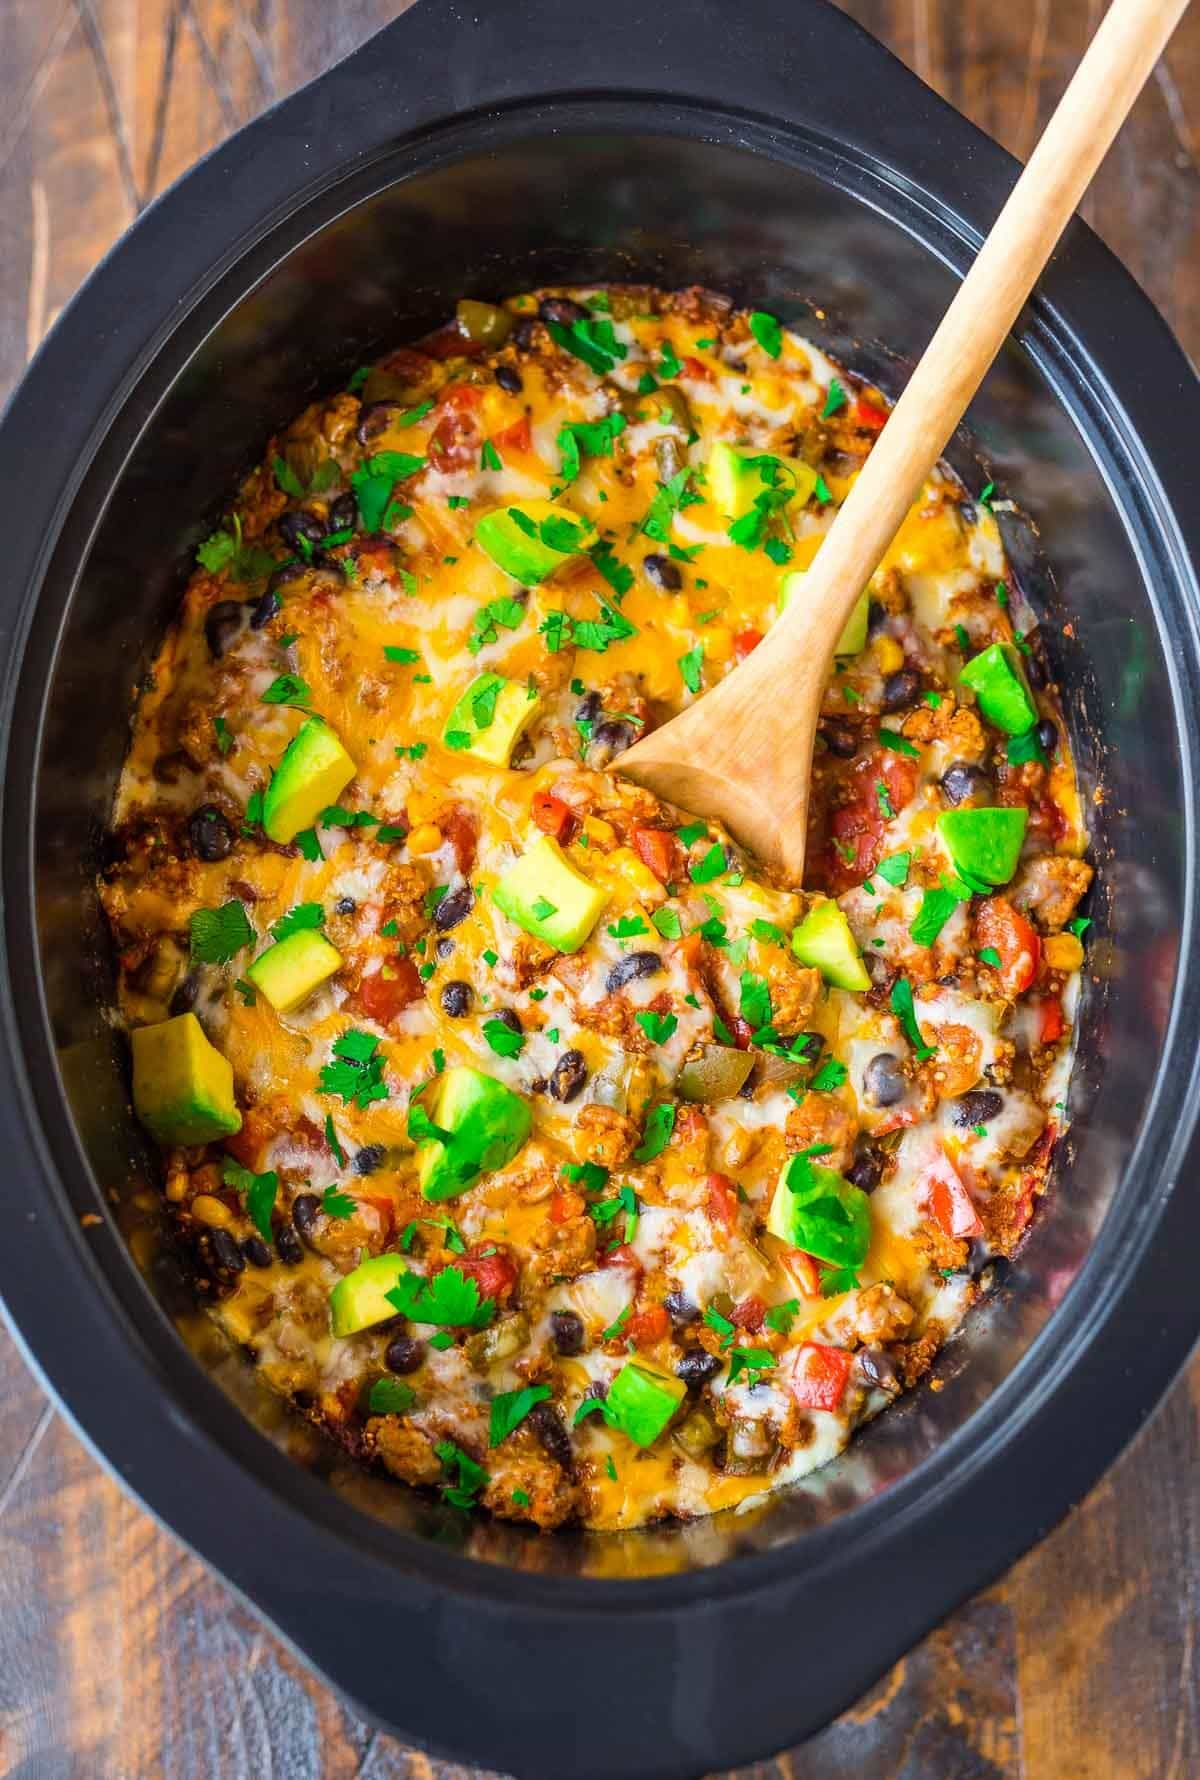 slow cooker full of cheesy Mexican casserole with chicken